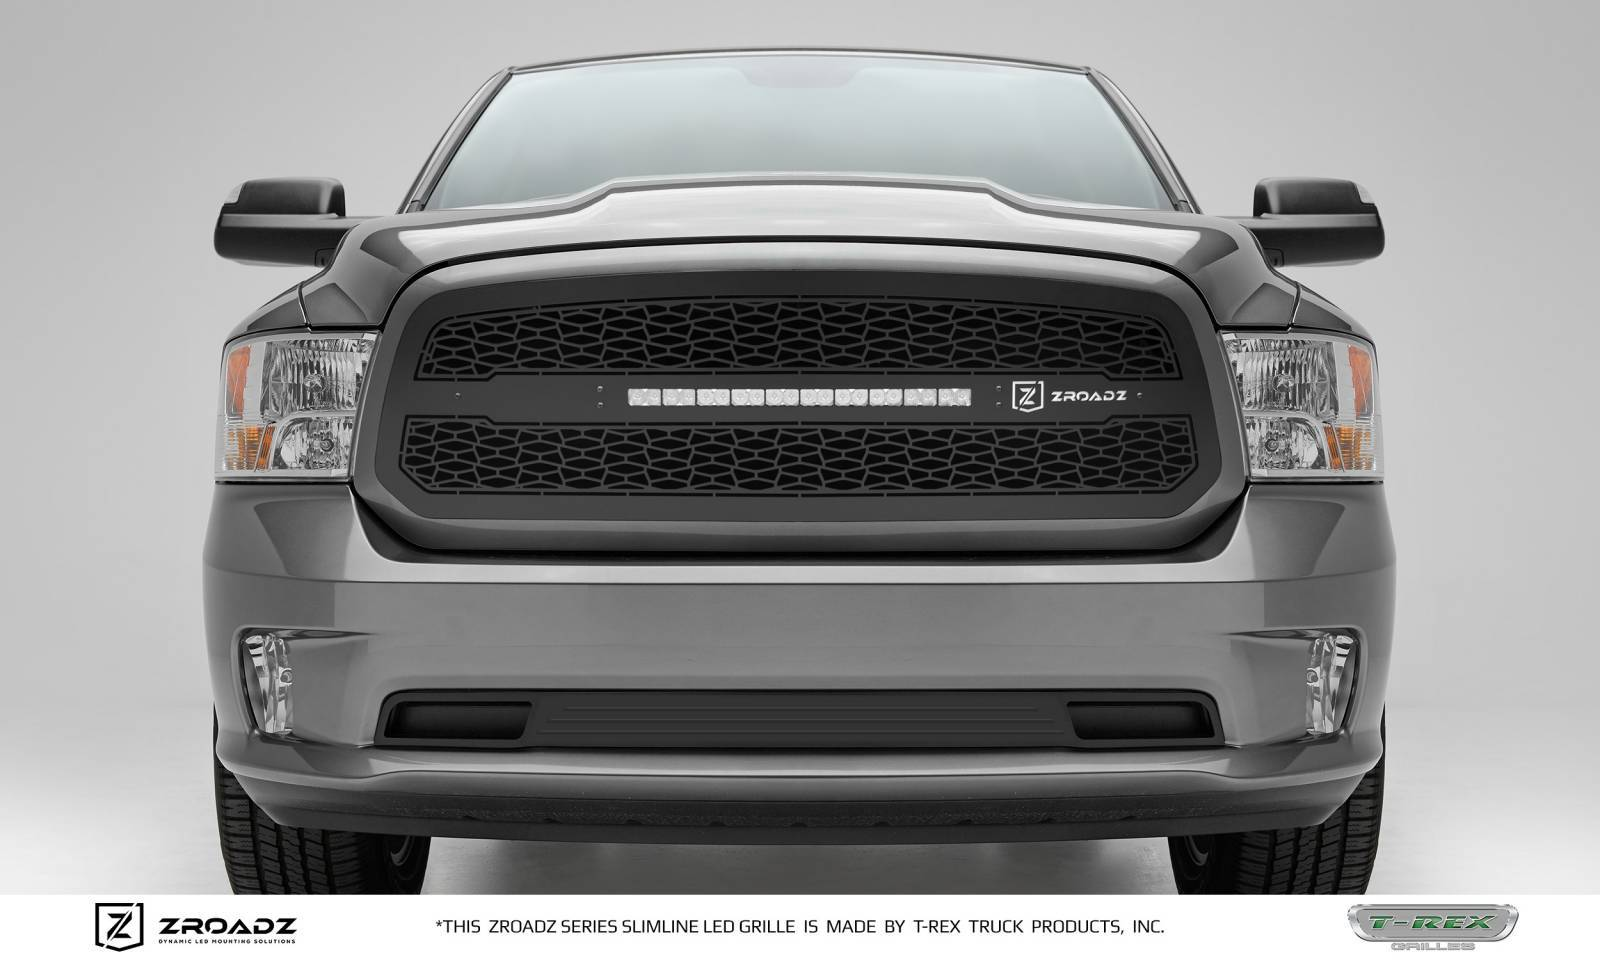 T-REX Grilles - Dodge Ram 1500 - ZROADZ Series - Main Insert - Grille w/ One 20 Inch Slim Line Single Row - Includes Universal Wiring Harness - Part# Z314581